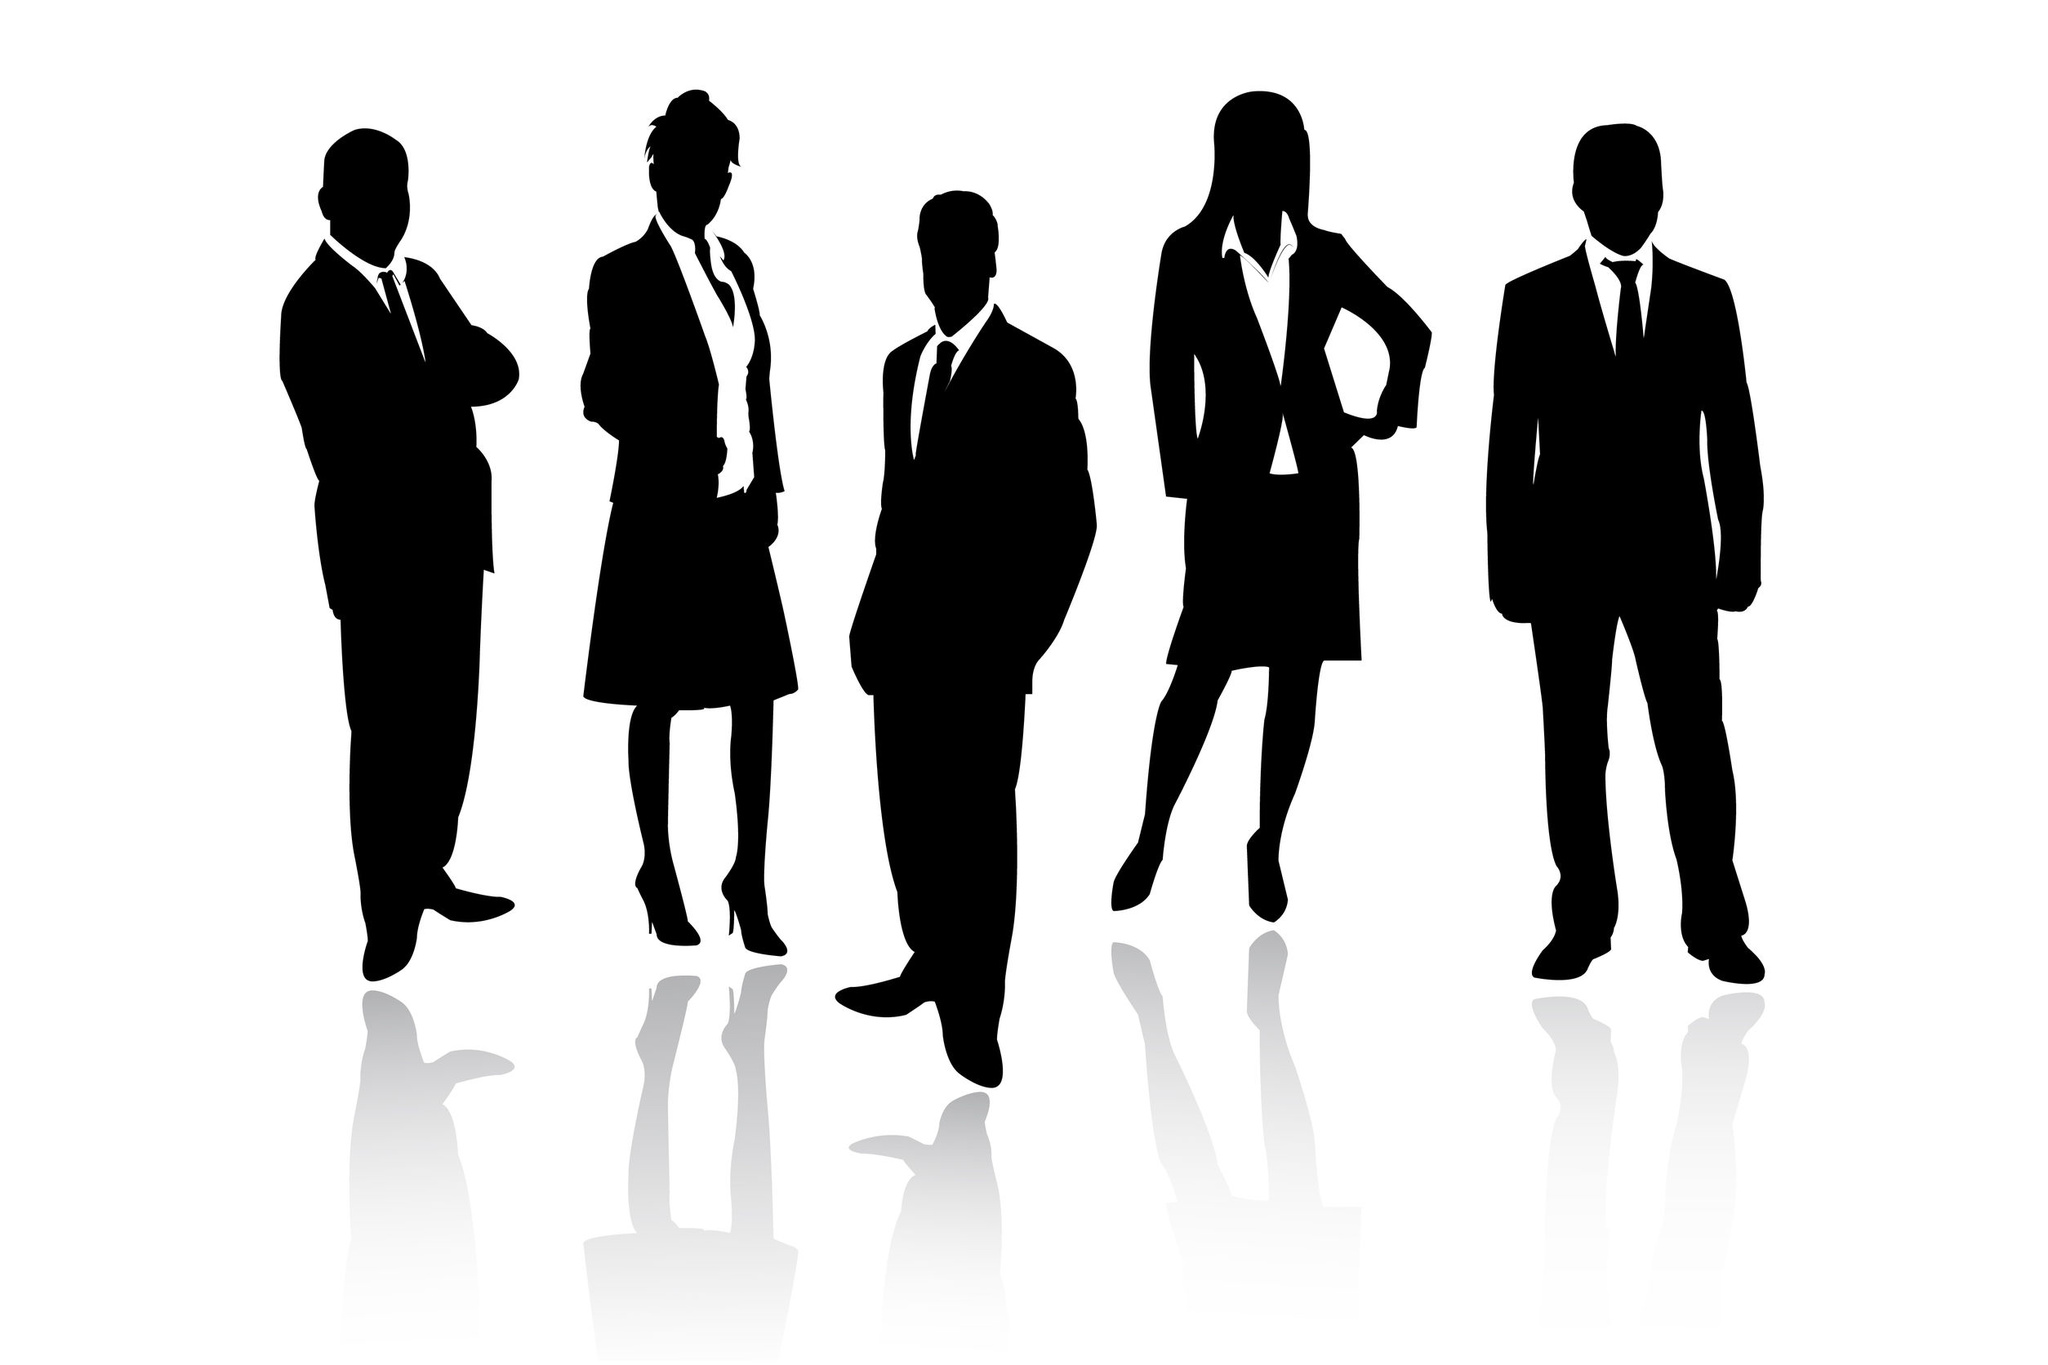 Employee clipart executive. Recruitment what is the